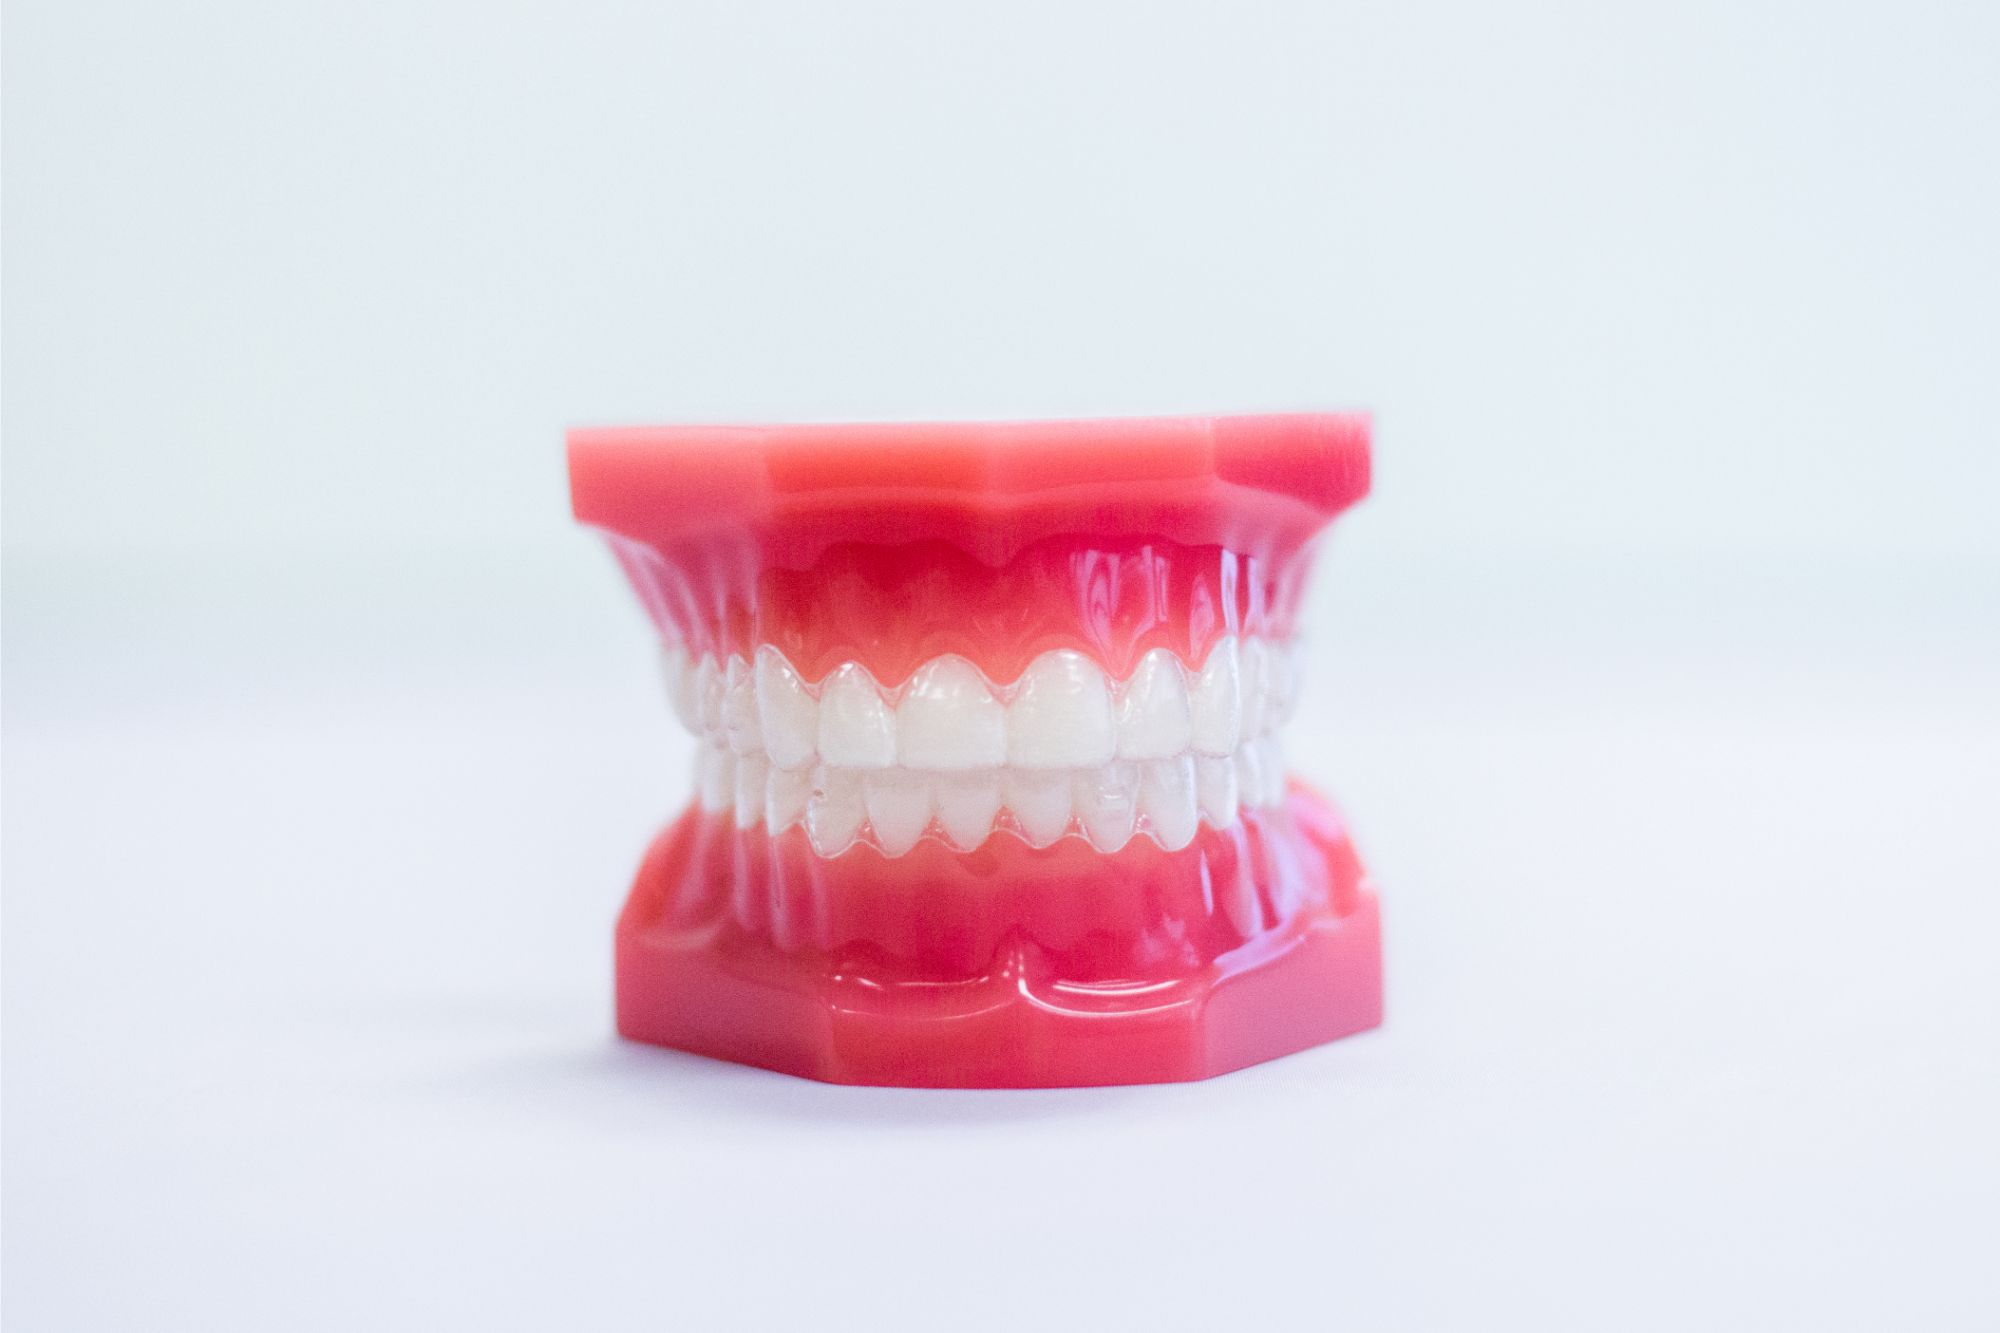 Model teeth with Invisalign